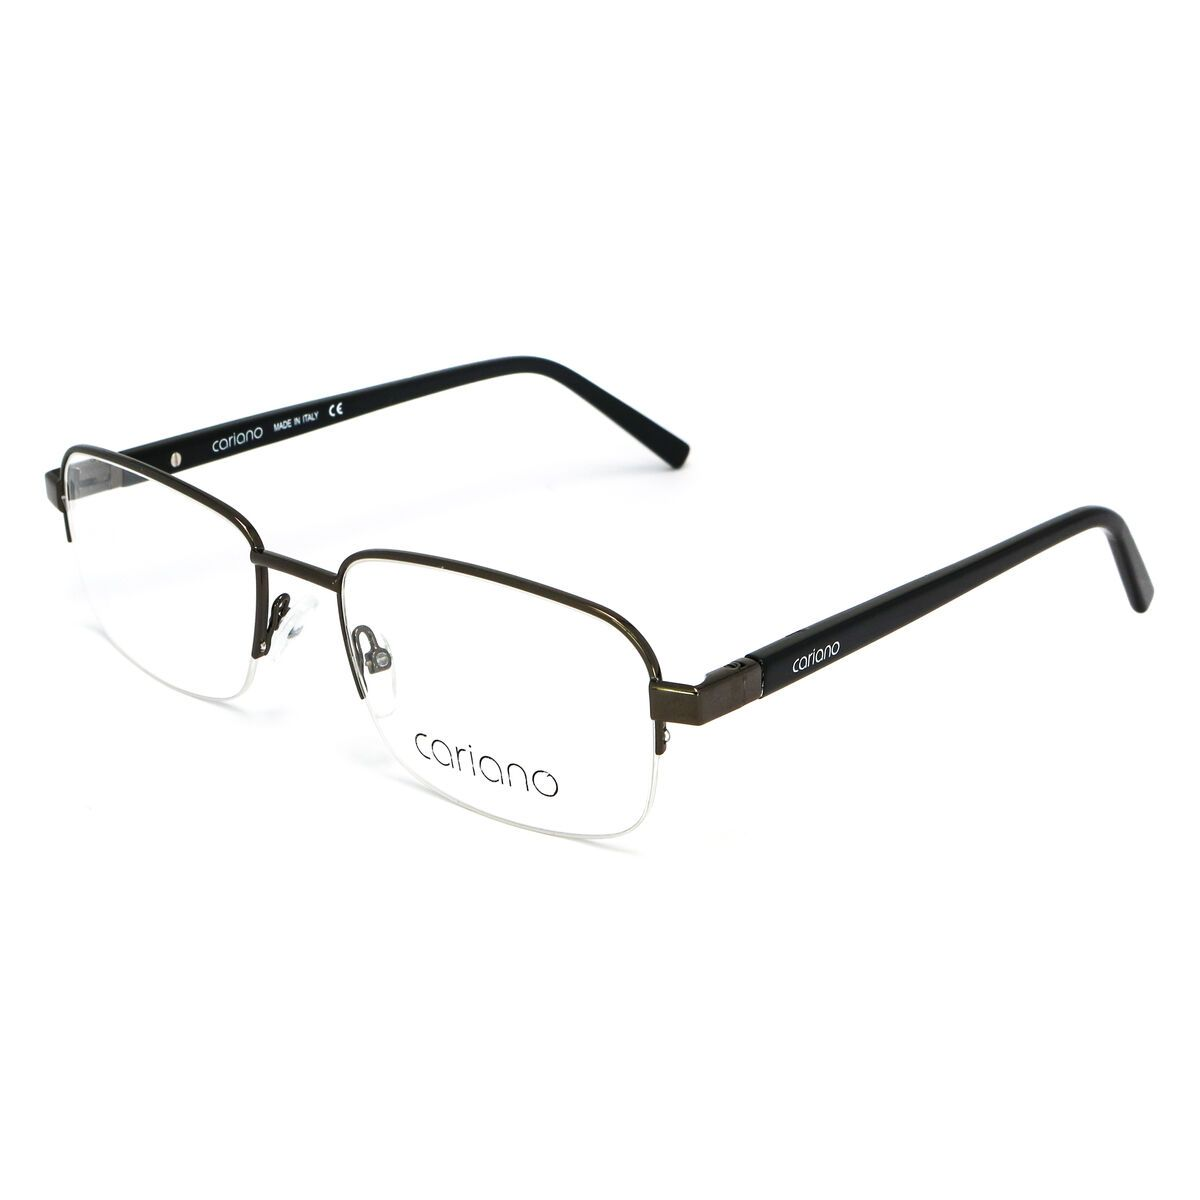 Cariano - 105 A size - 56